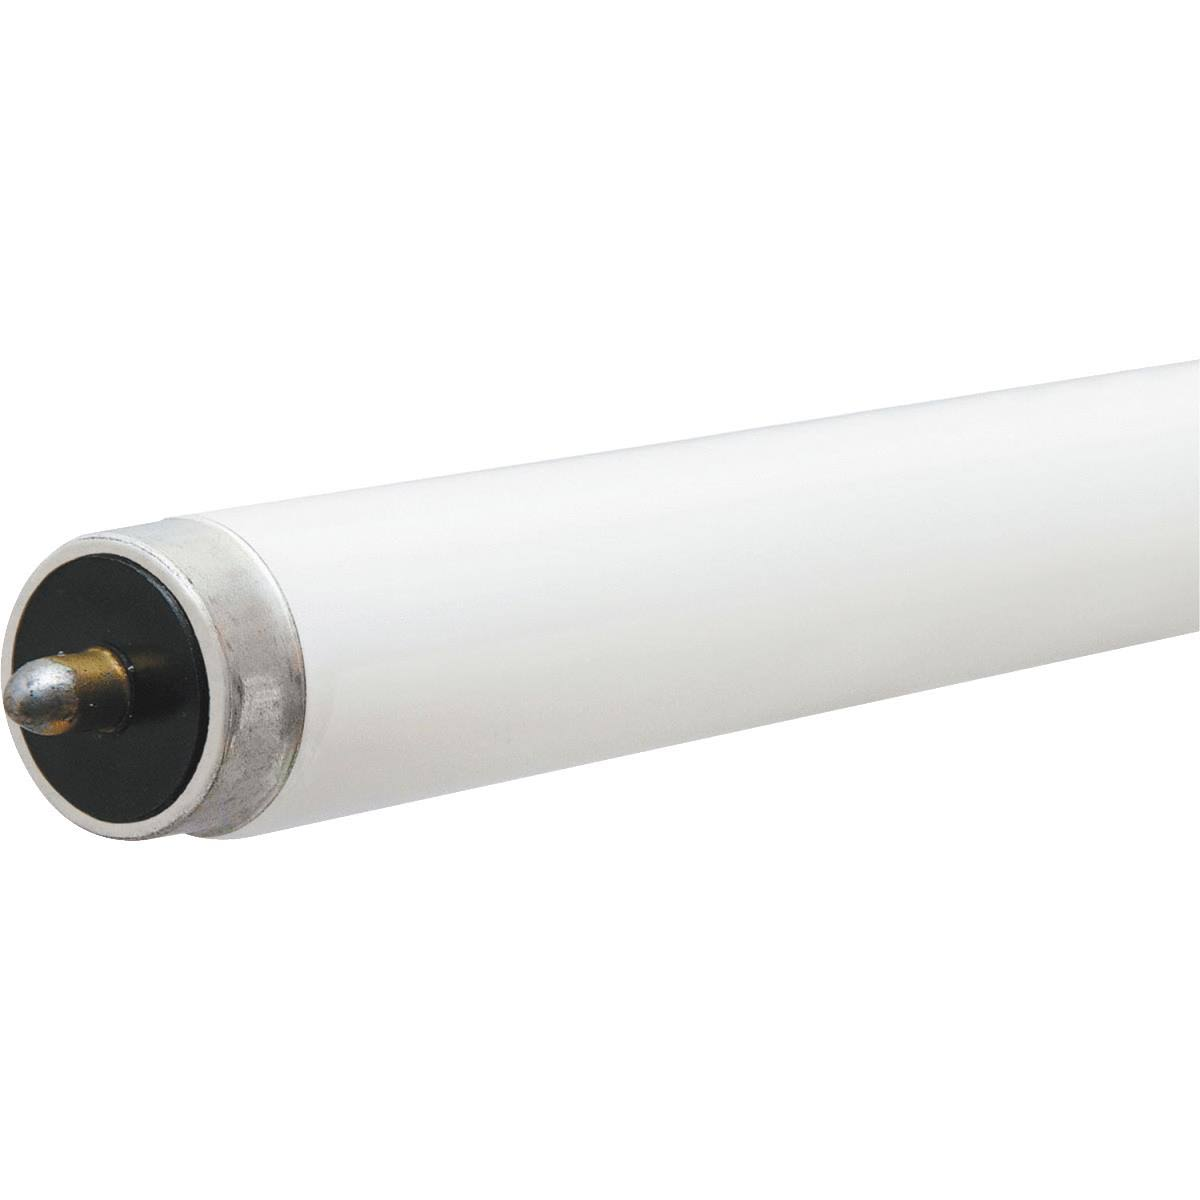 Philips T8 Single Pin Fluorescent Tube Light Bulb - 59W